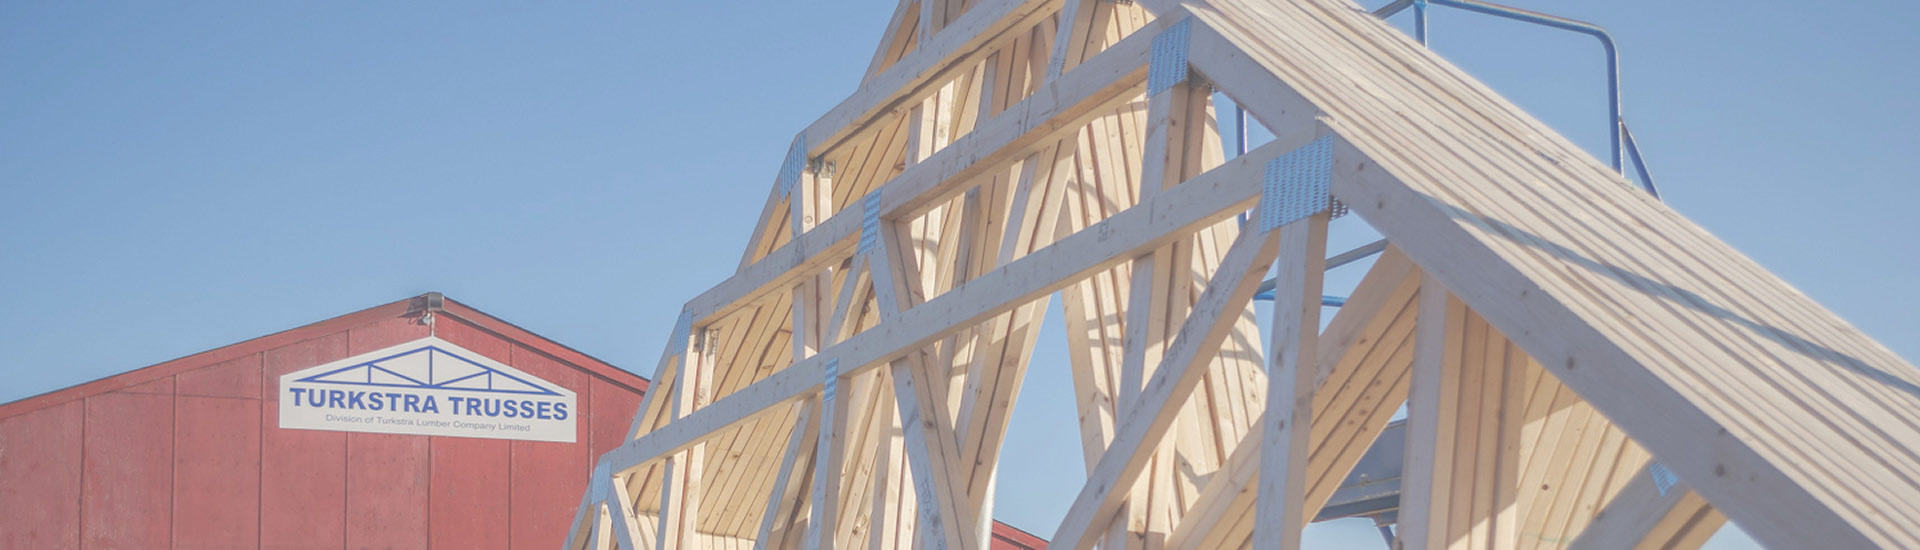 Turkstra Dundas - Custom residential, agricultural, commercial, industrial trusses manufactured by Turkstra. Ask us for an estimate or quote.